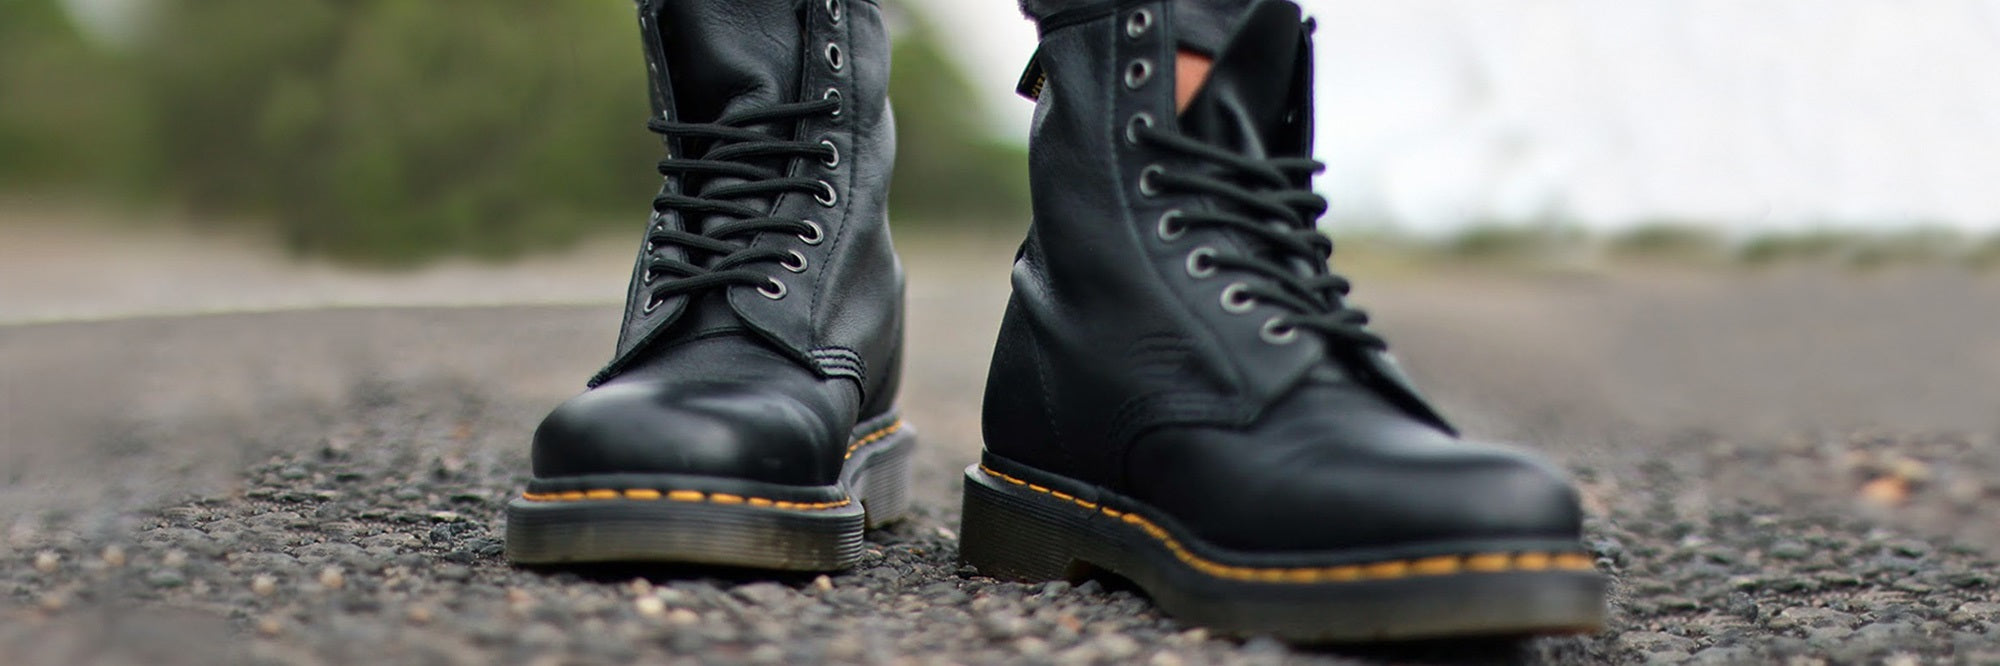 End of an Era: Dr Martens scrap their lifetime guaranteed